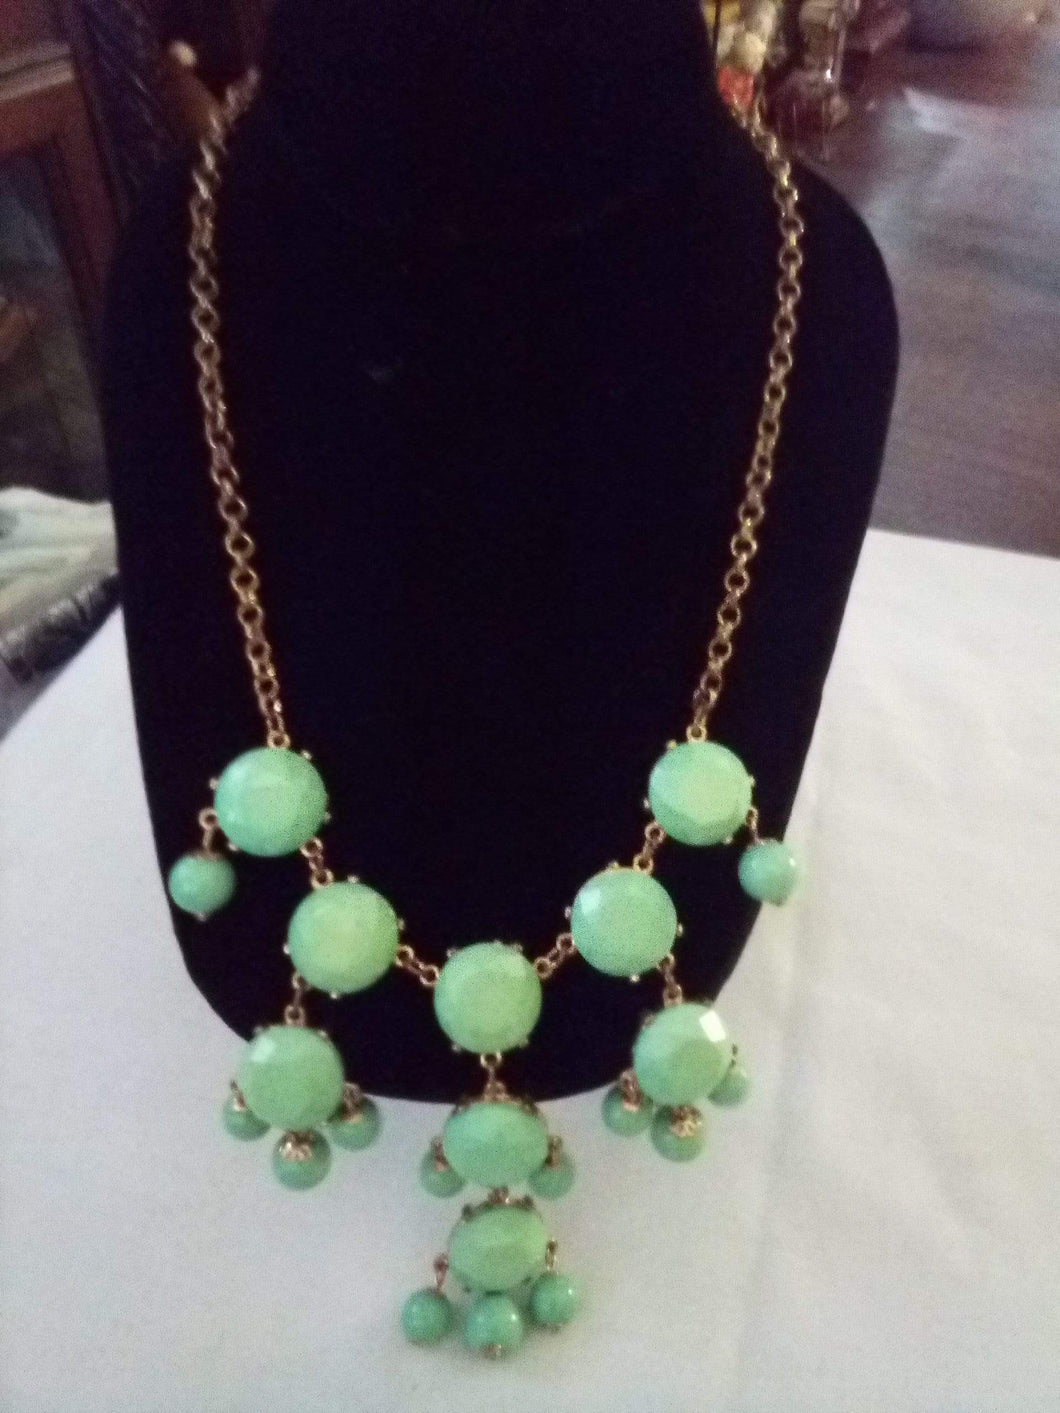 Mint green dressy necklace - B&P'sringsnthings